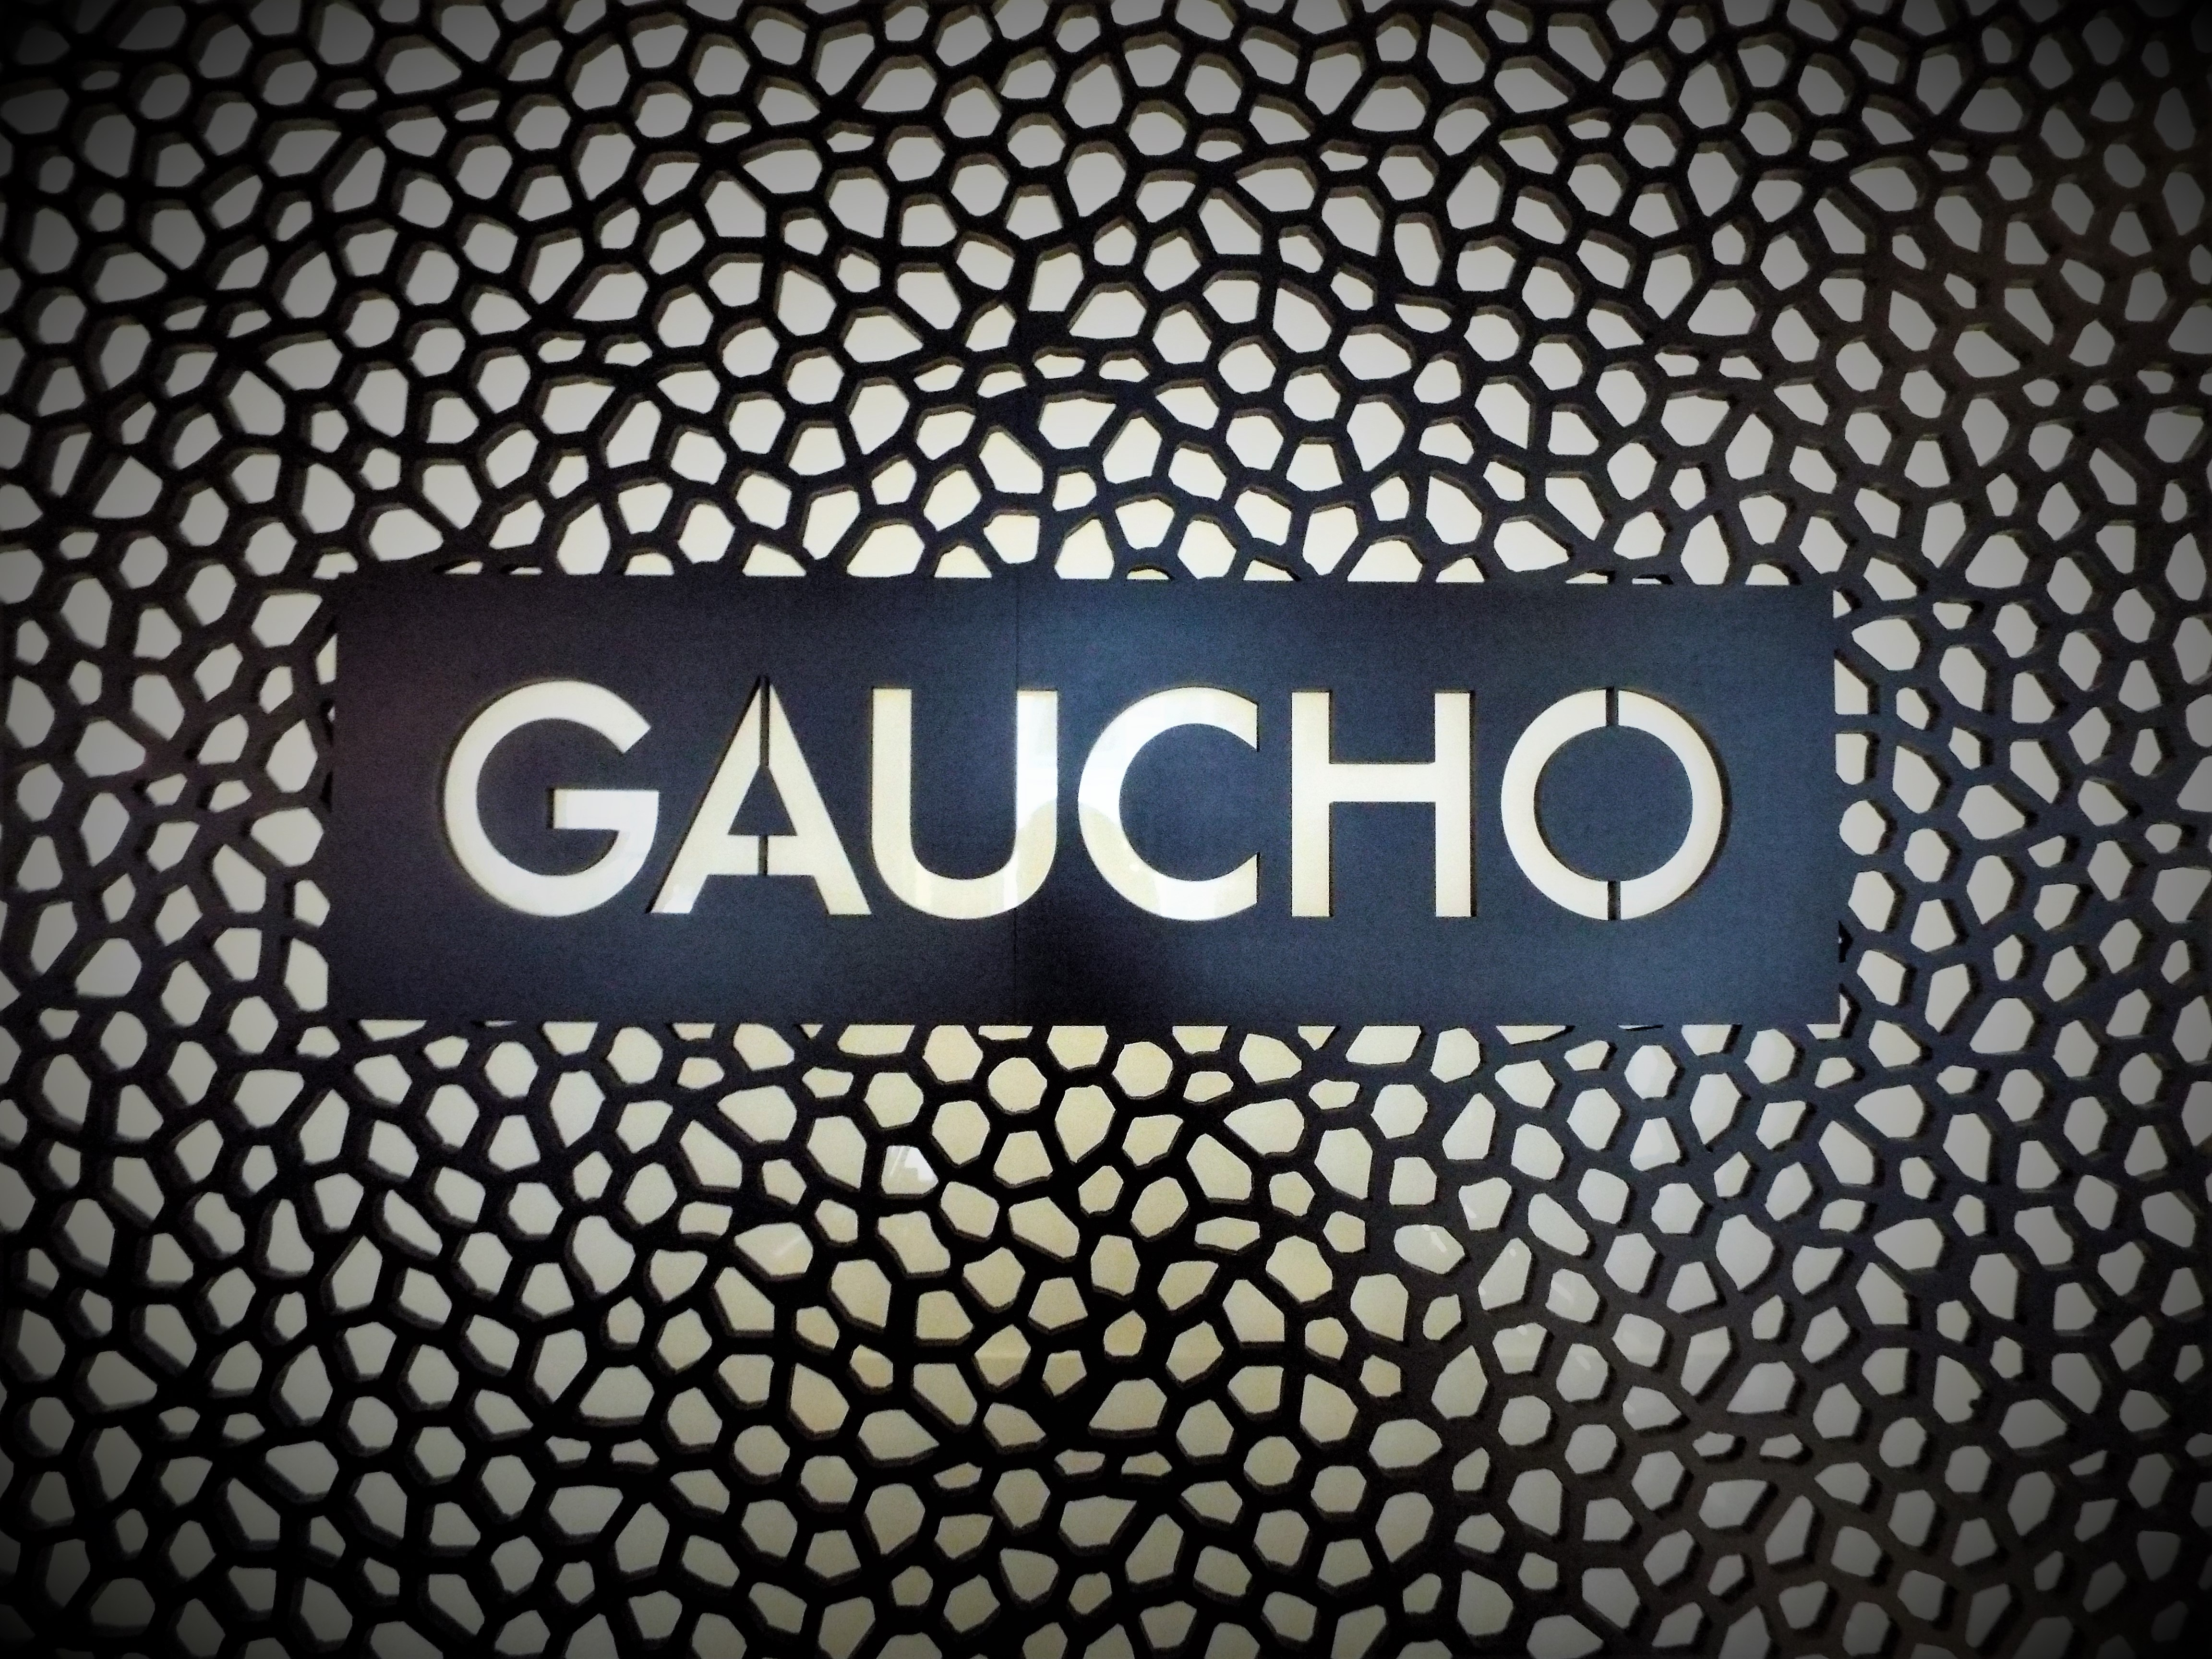 Beef, Wine and all things fine at Gaucho Birmingham